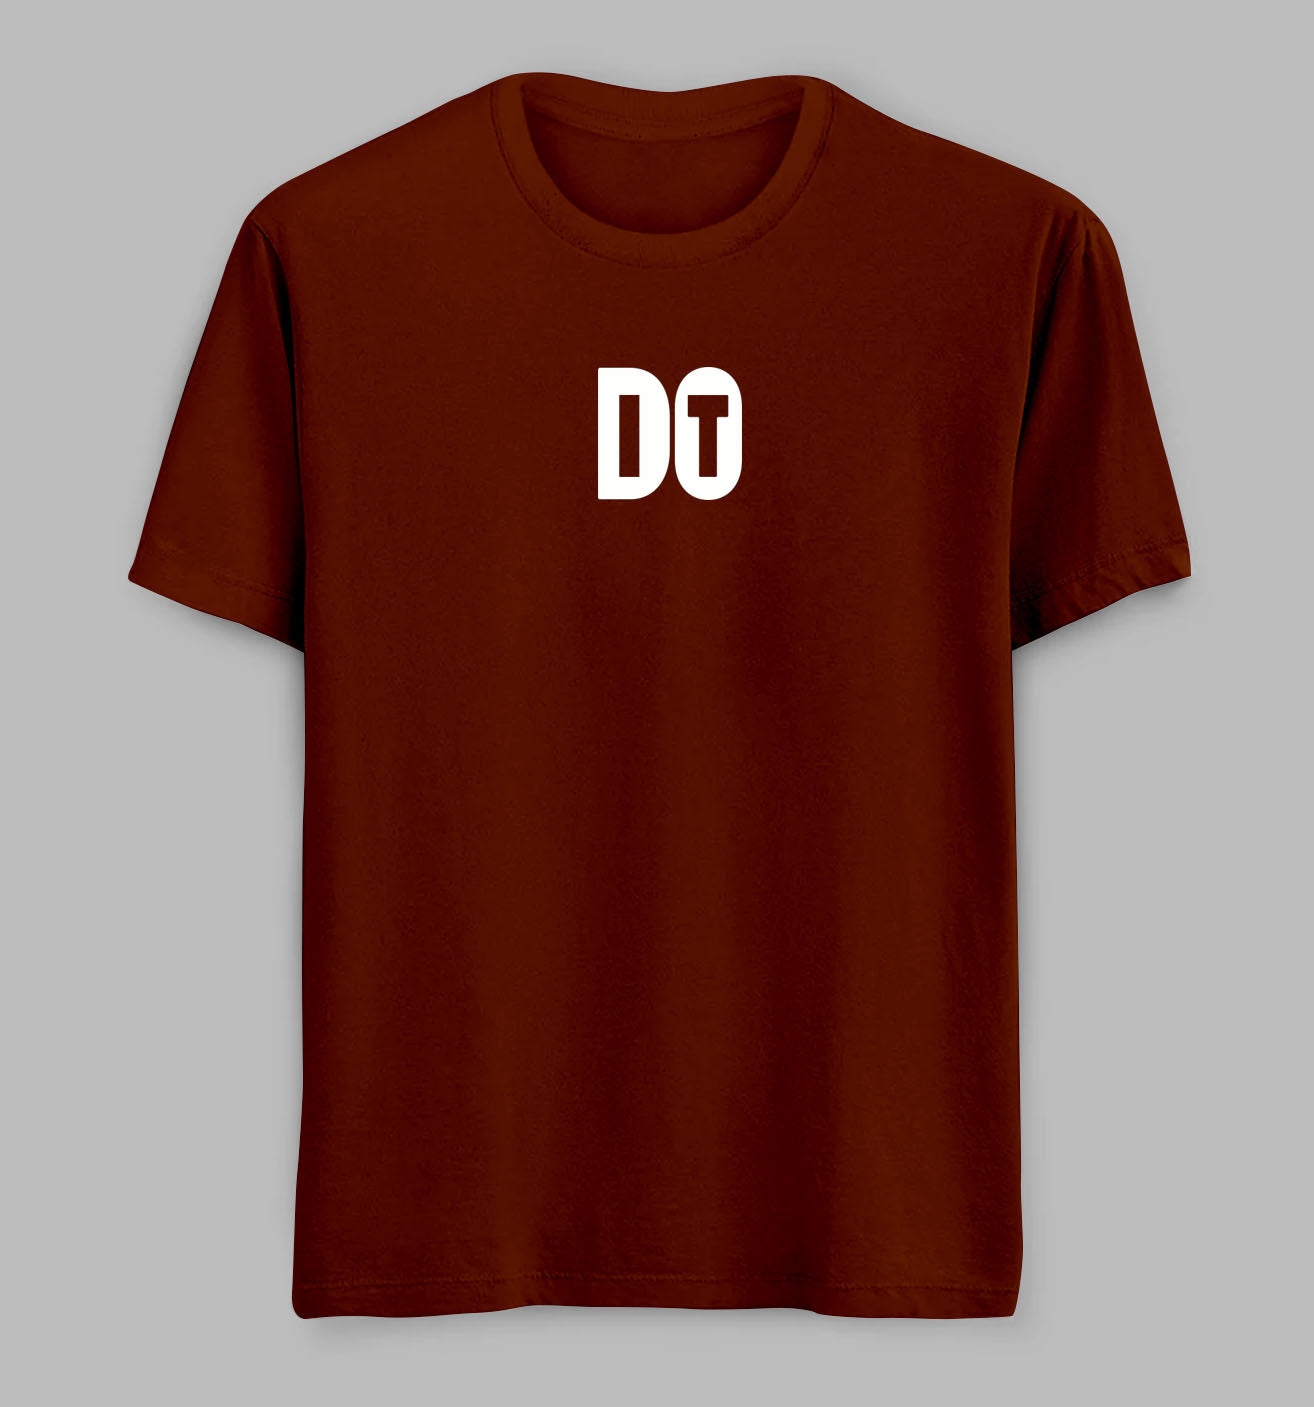 Do It Tees/ Tshirts